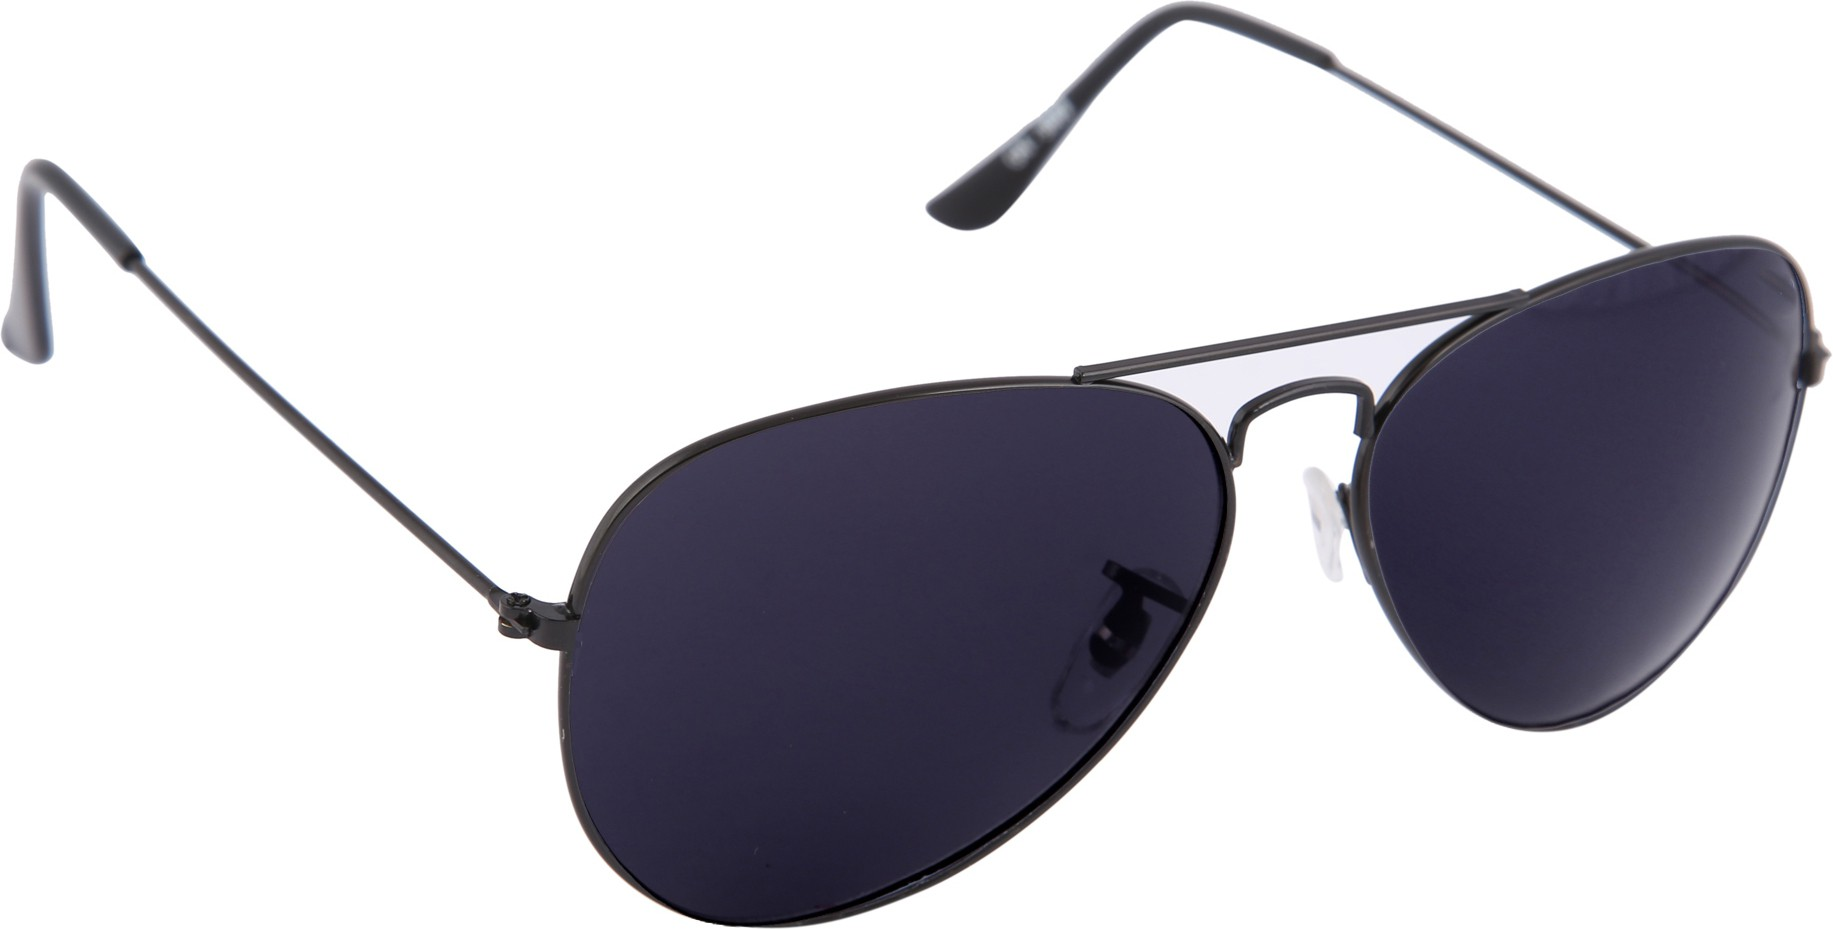 Deals - Delhi - Beqube, Abster... <br> Sunglasses<br> Category - sunglasses<br> Business - Flipkart.com